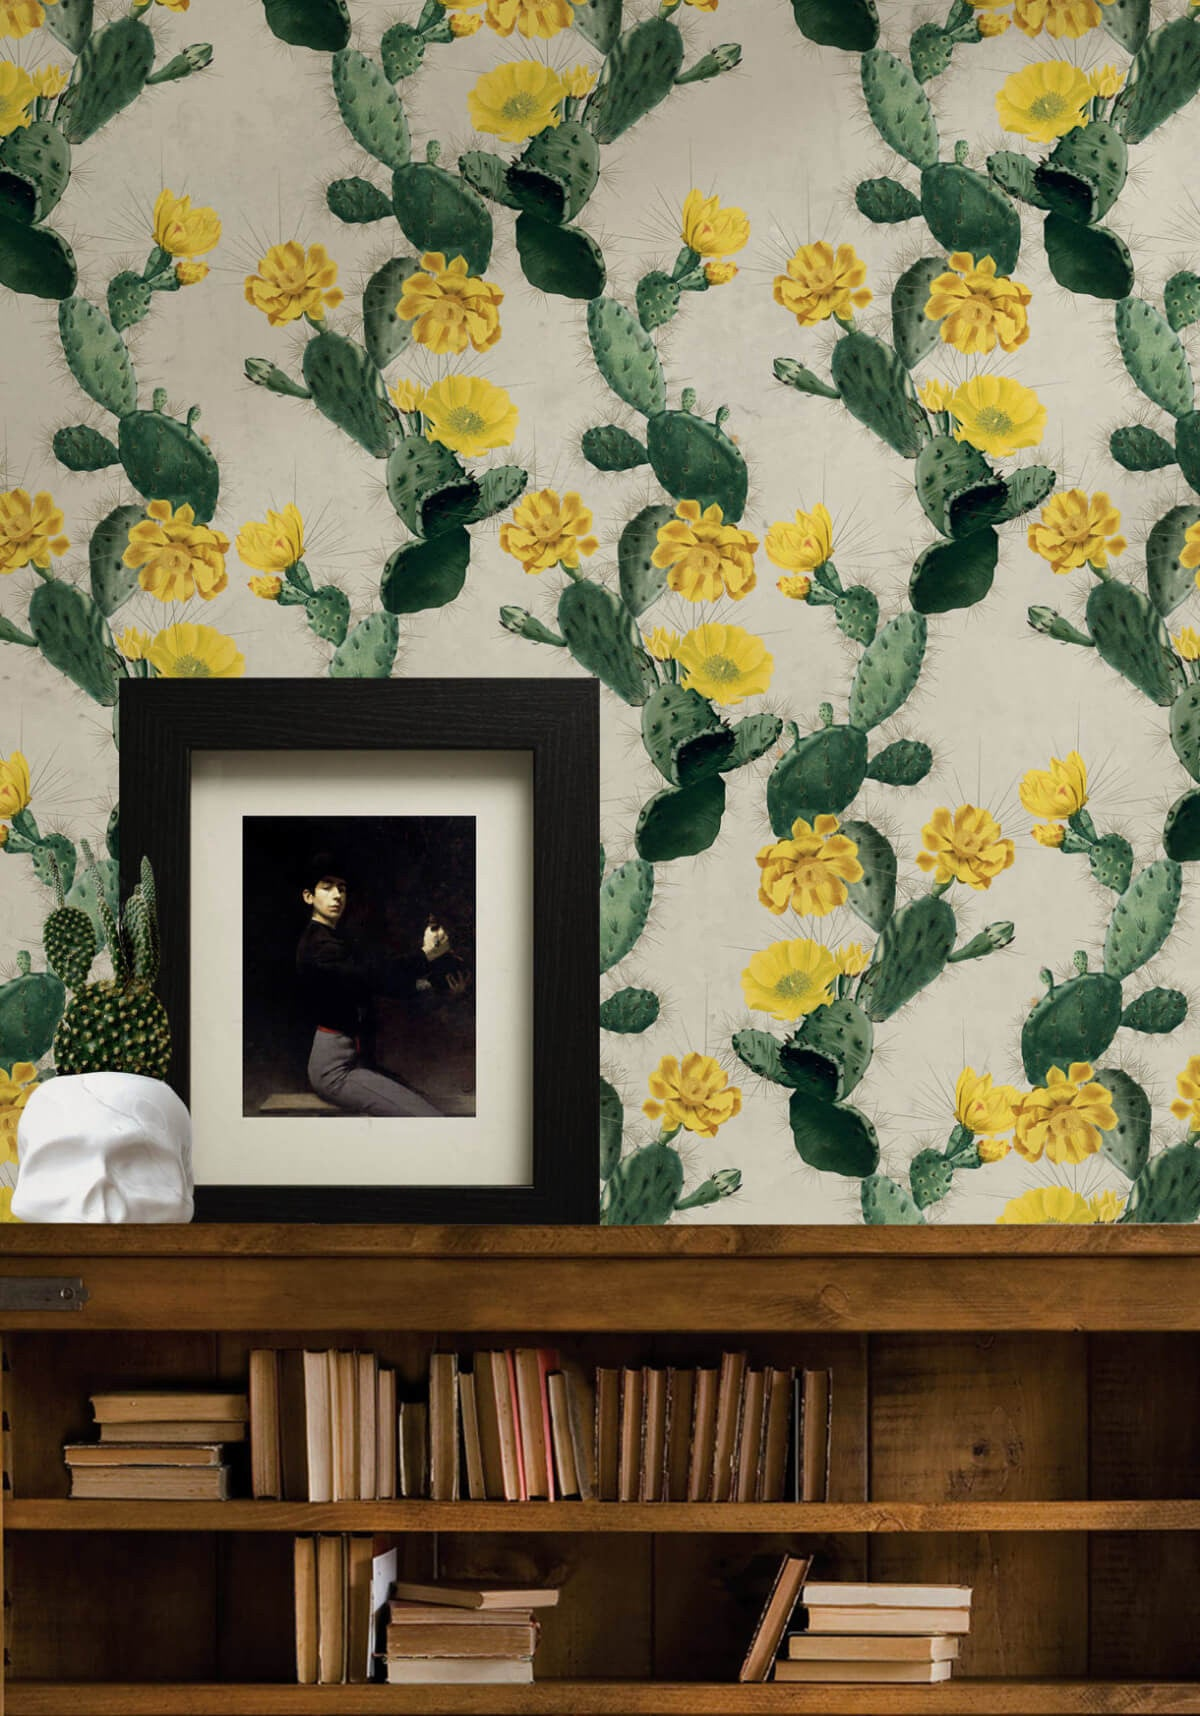 Cactus Wallpaper In Yellow Day From The Kingdom Home